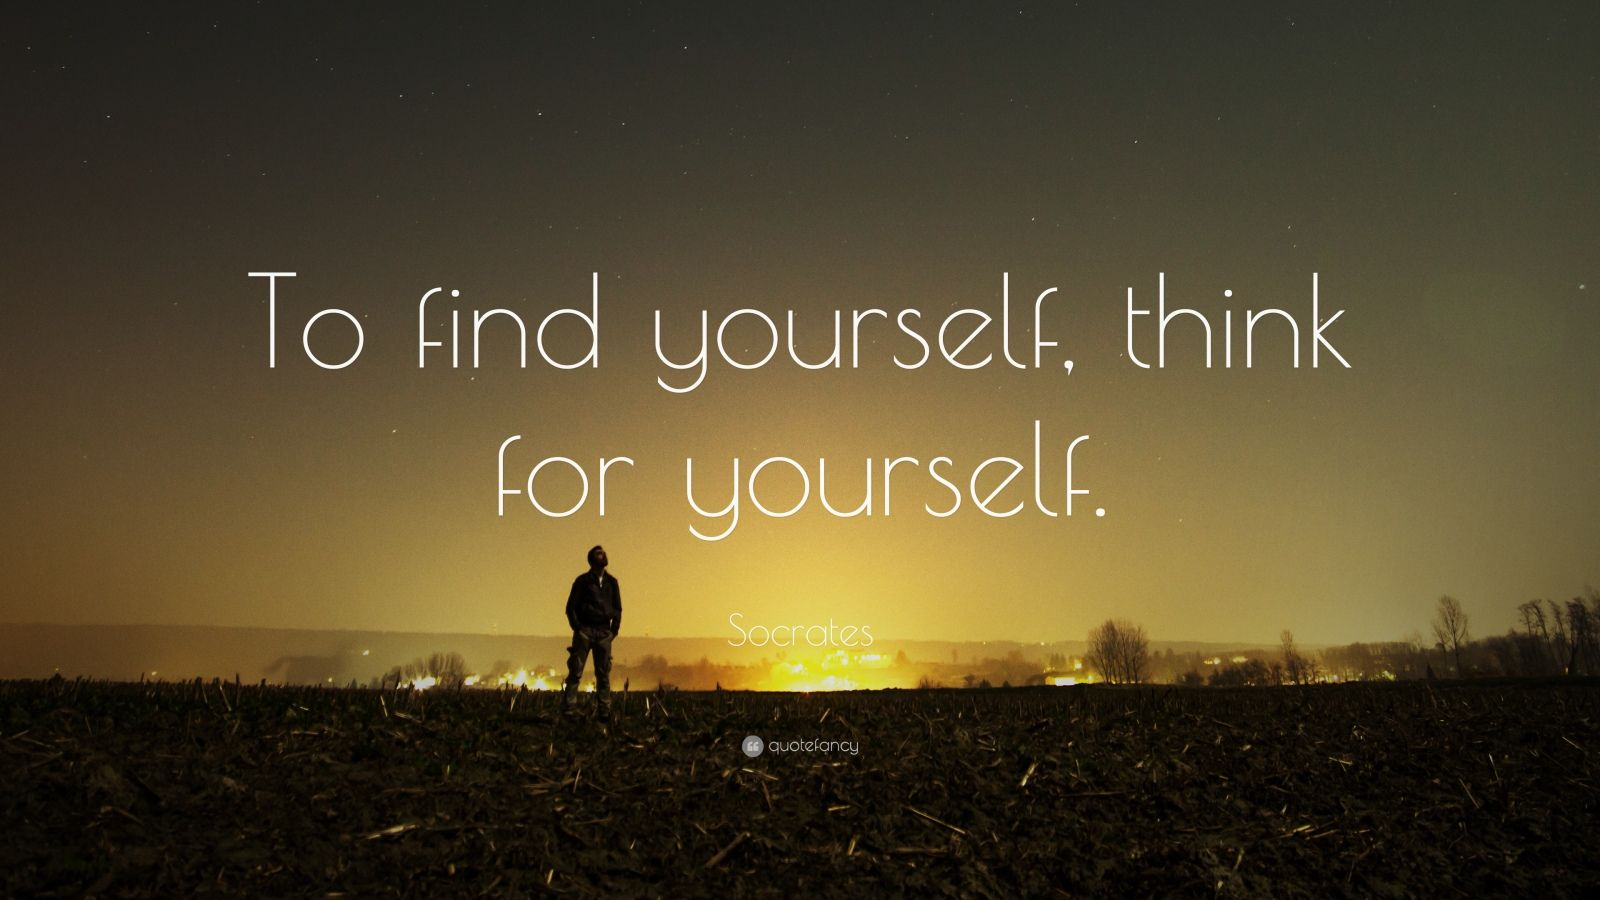 find yourself think for yourself socrates best